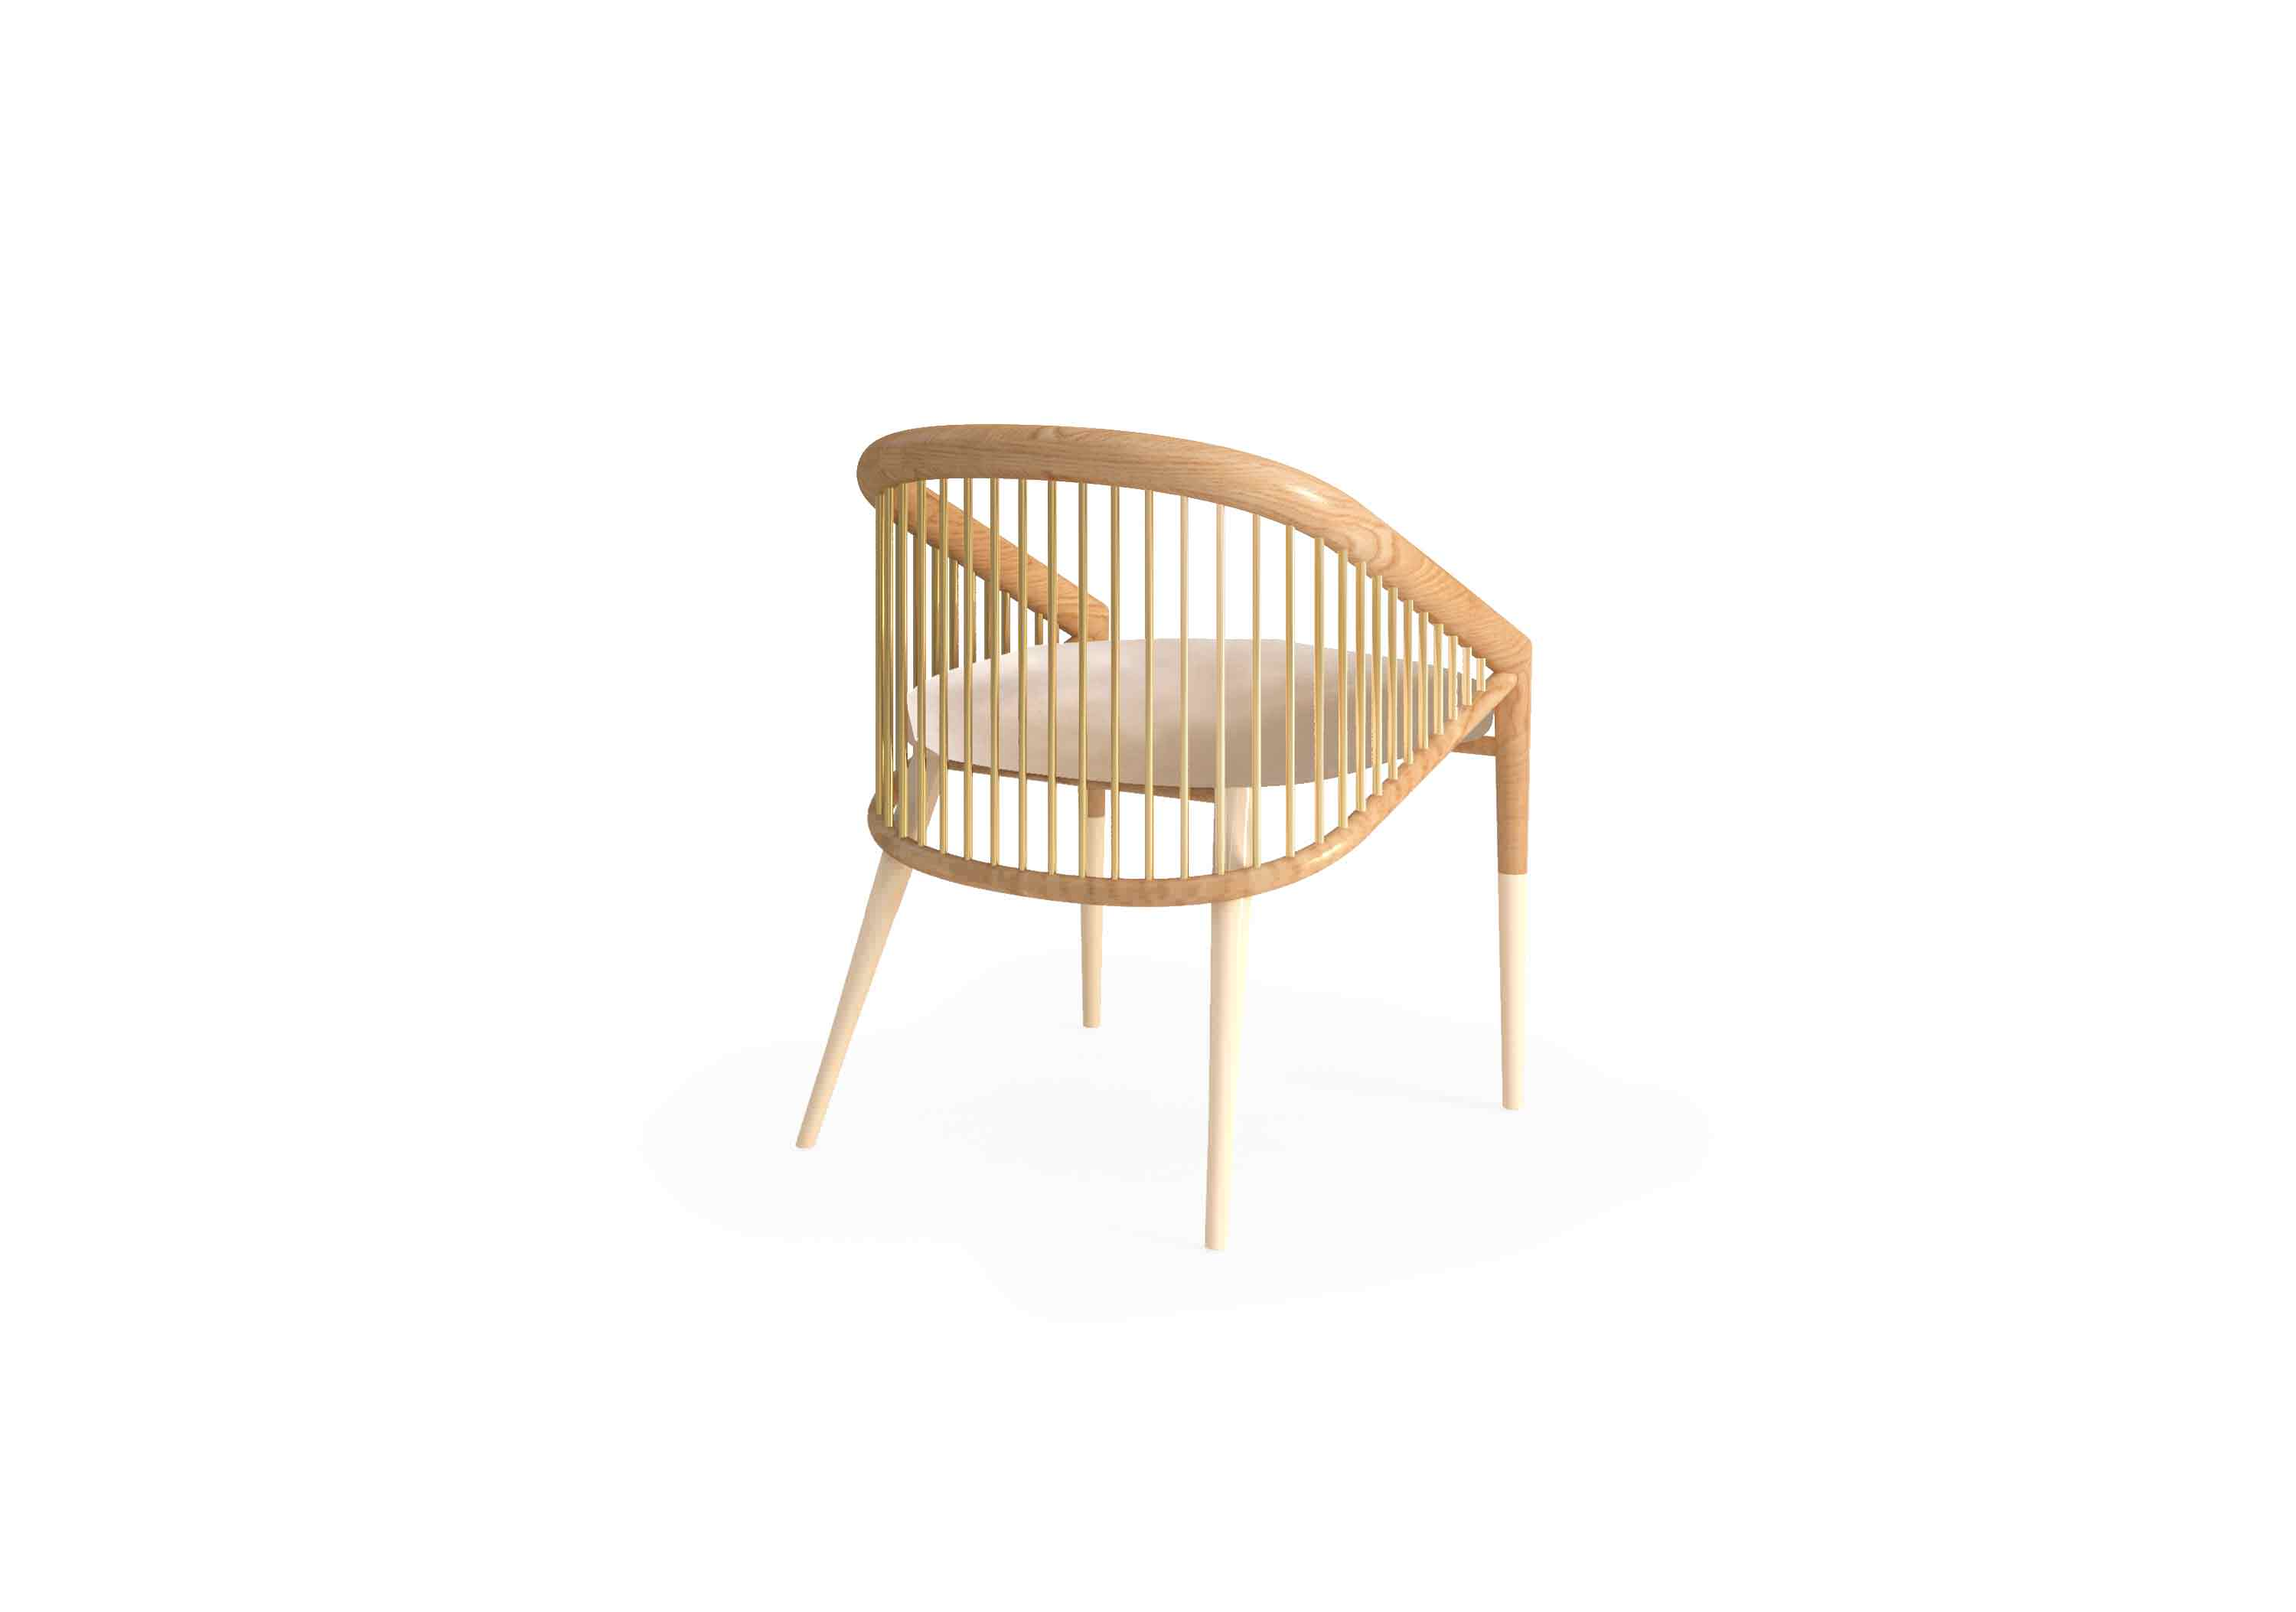 The polished brass tubes add a refined and sophisticated look to this design chair. Perfect for an elegant dining room.